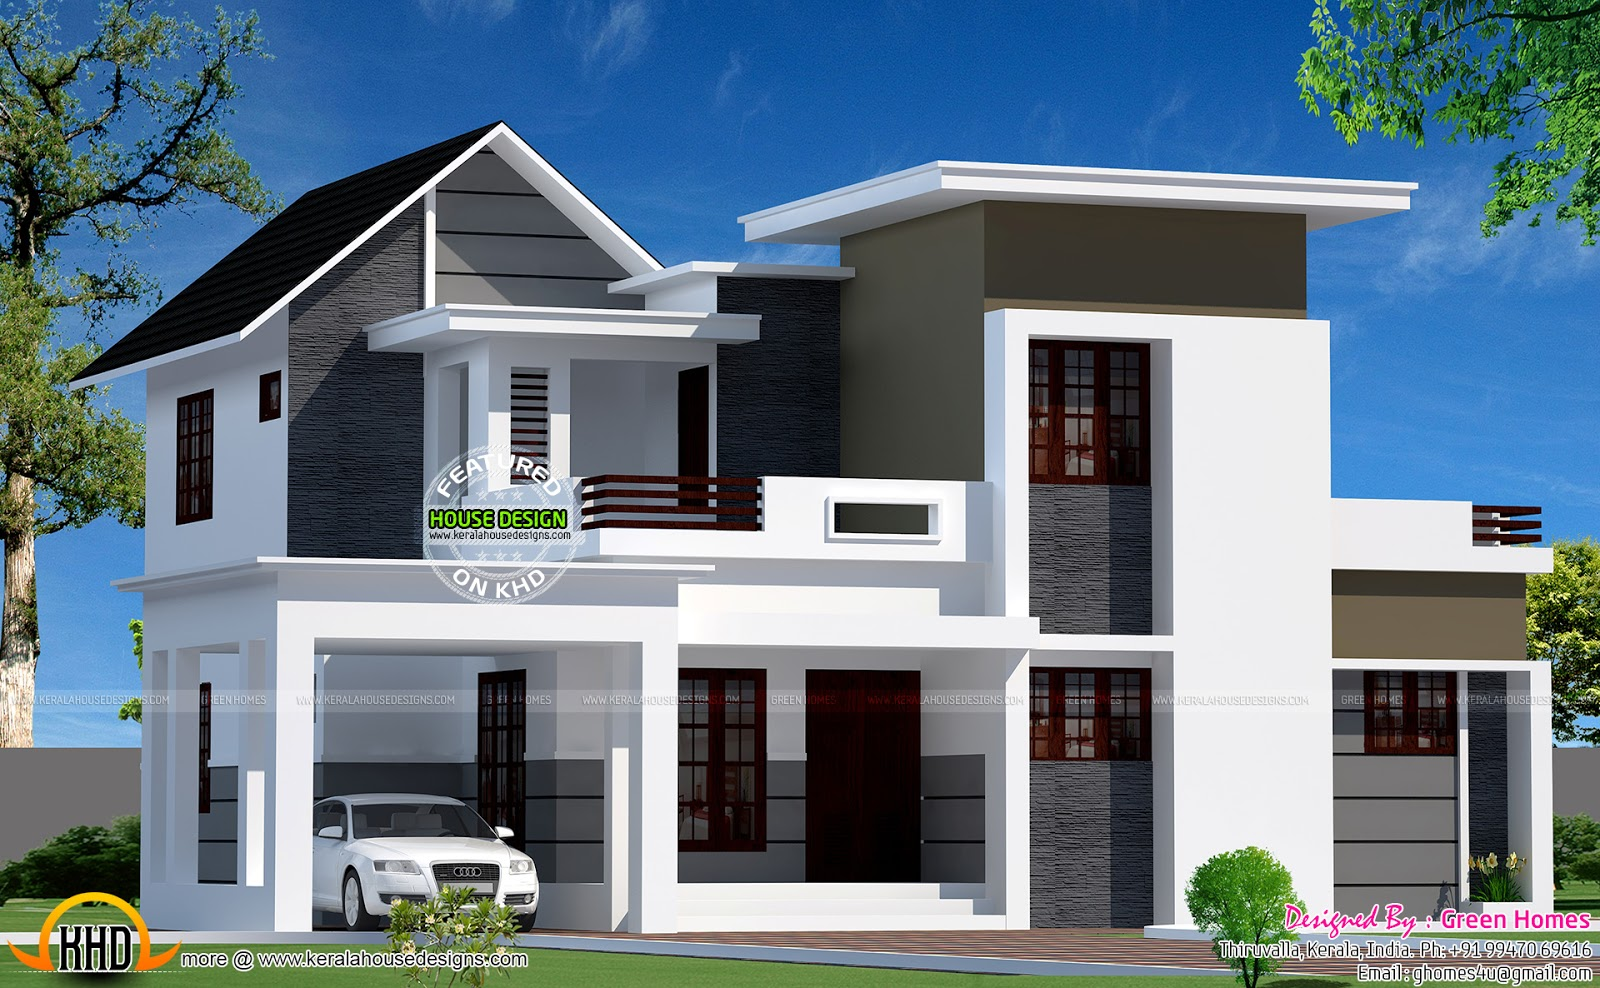 Neat looking mixed roof abode  Kerala abode designing together with flooring plans